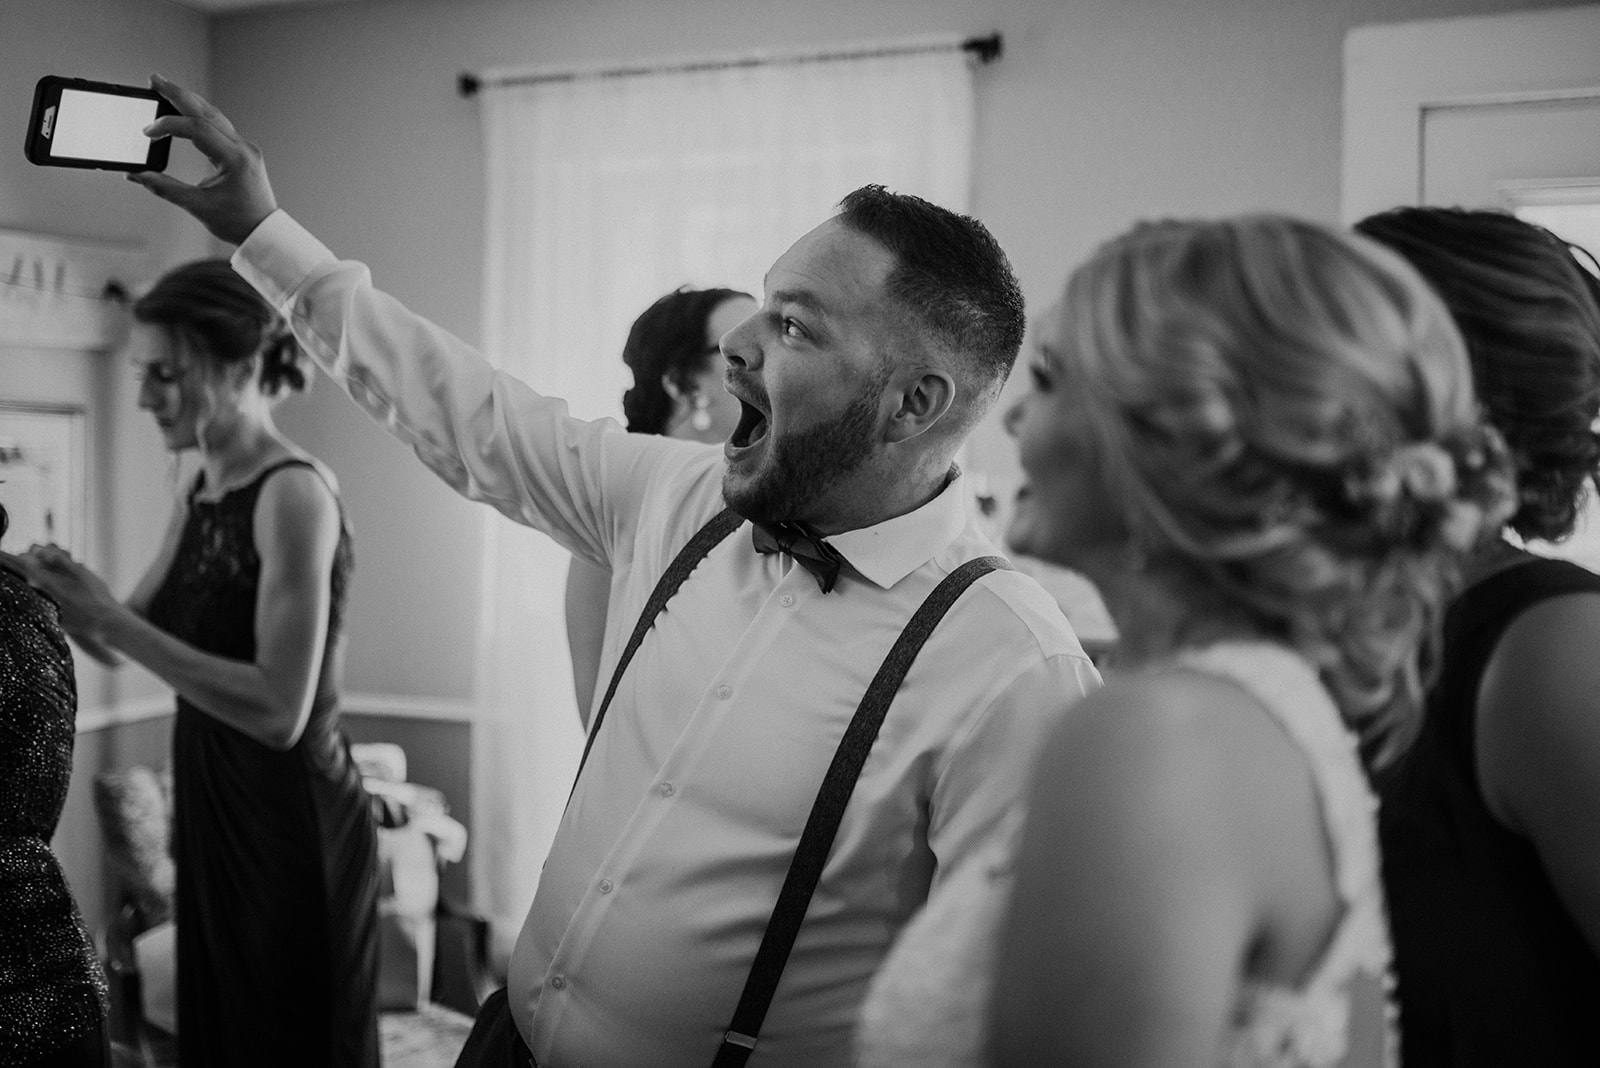 overthevineswisconsinwedding_0413.jpg